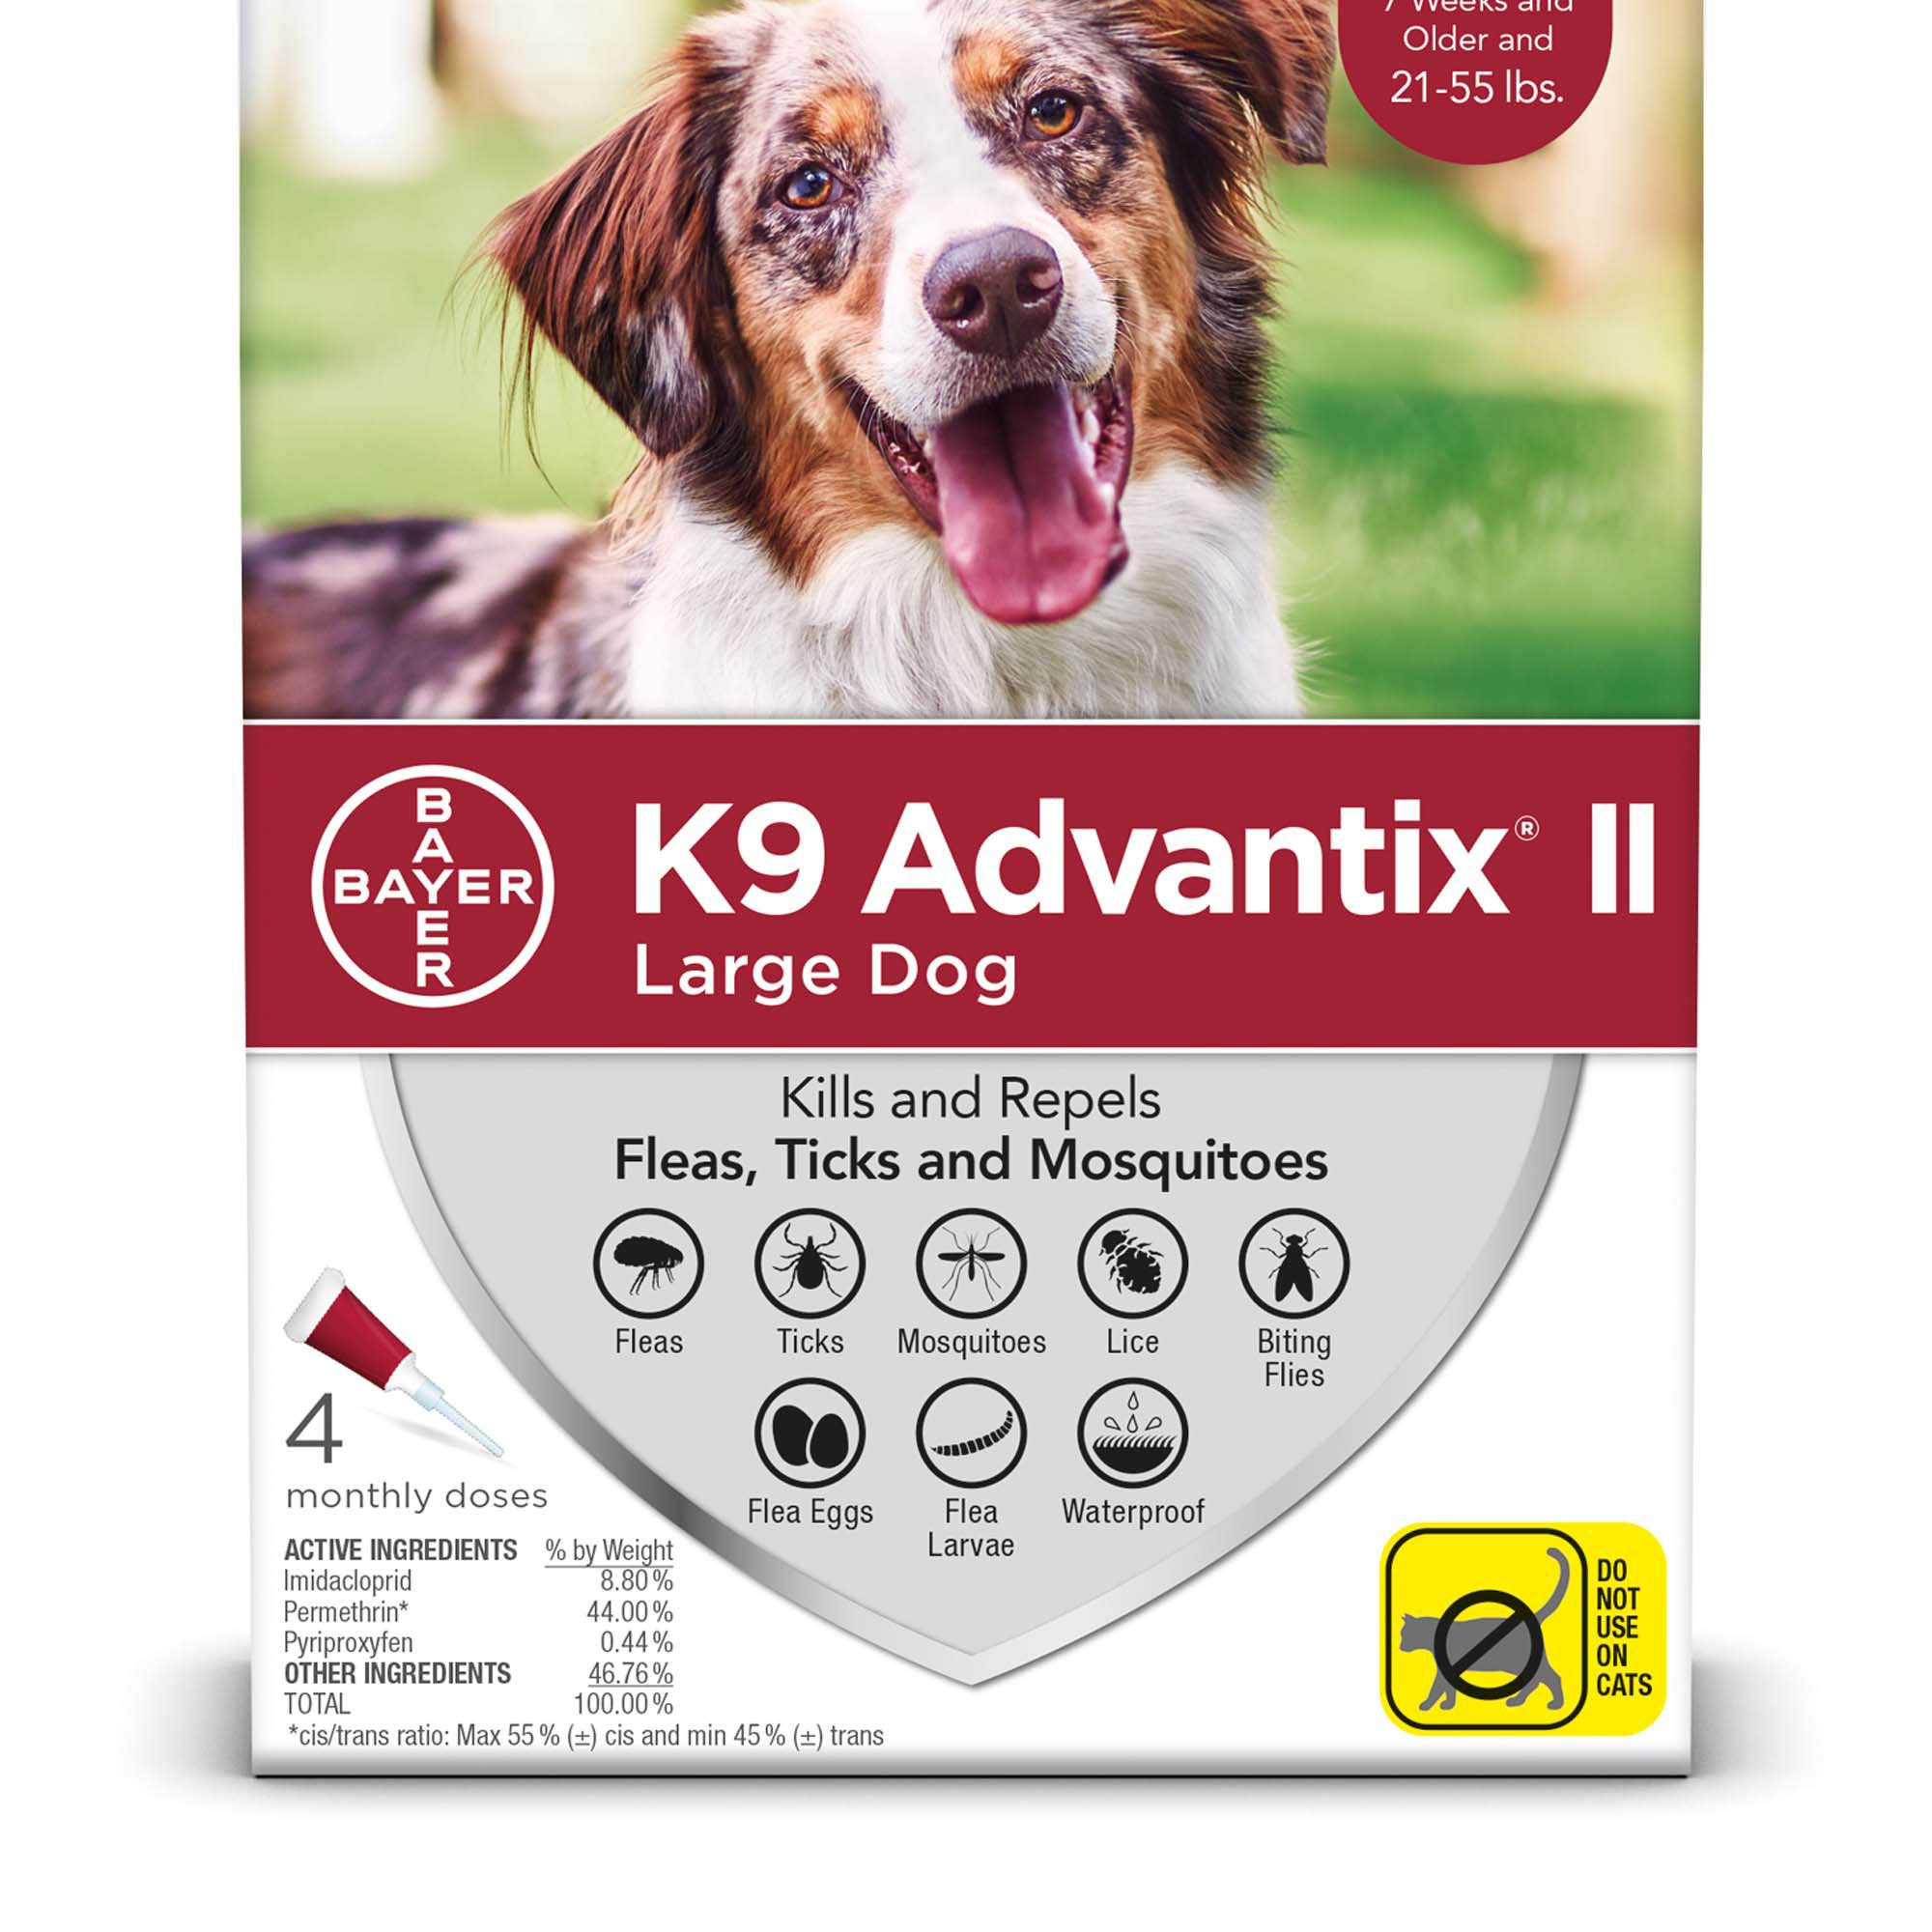 Bayer K9 Advantix II Flea & Tick Treatment for Large Dogs 21-55 lbs, 2 Pack